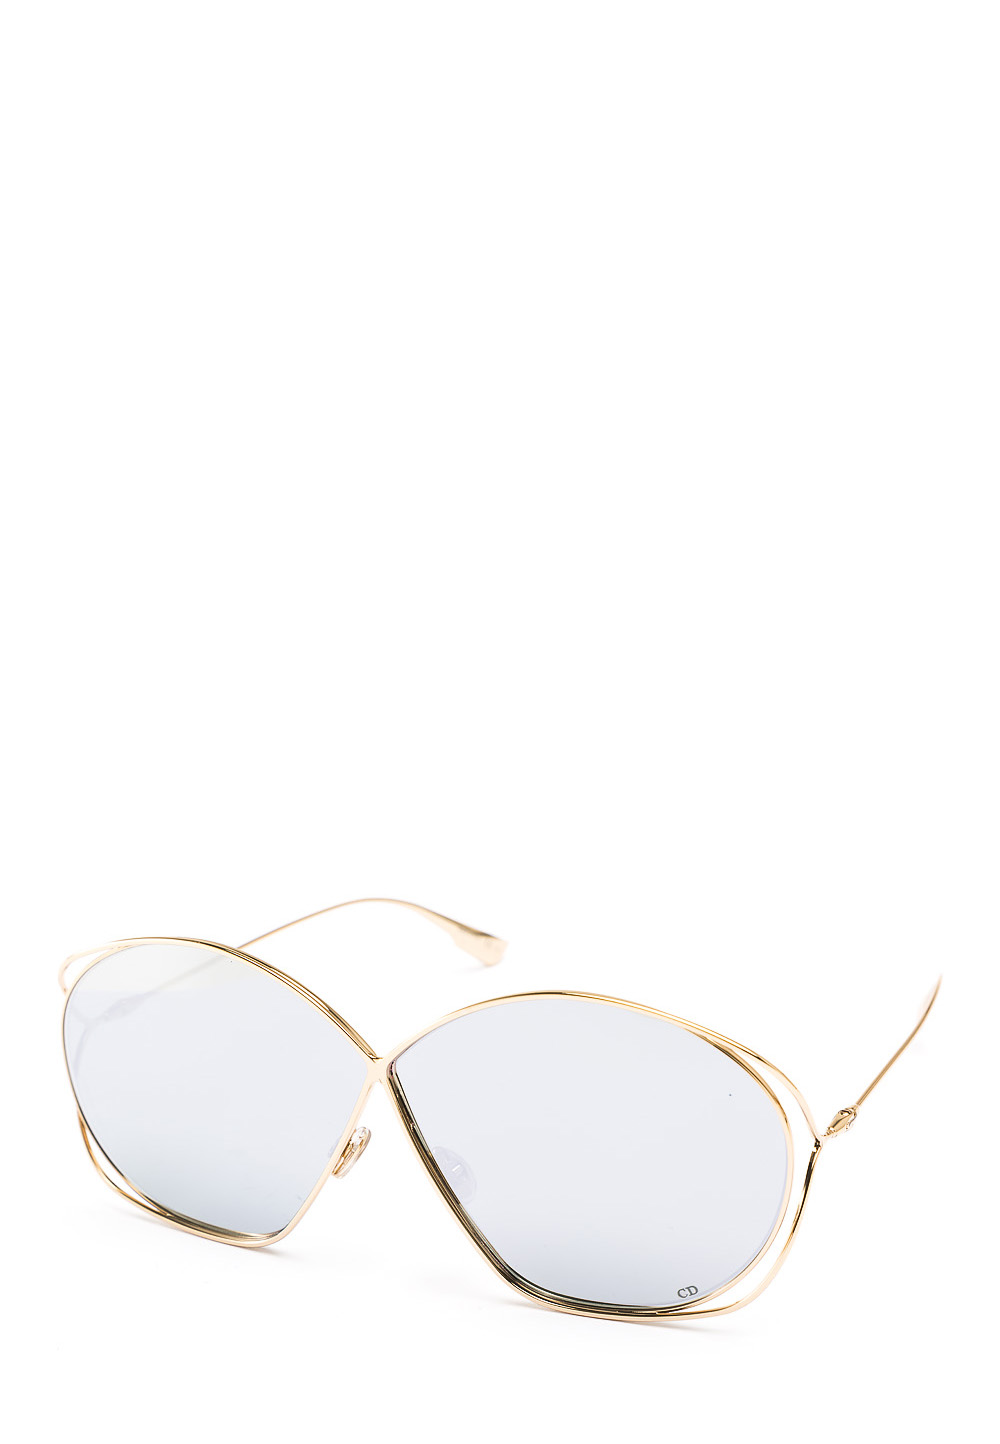 Sonnenbrille stellaire2, UV 400, golden